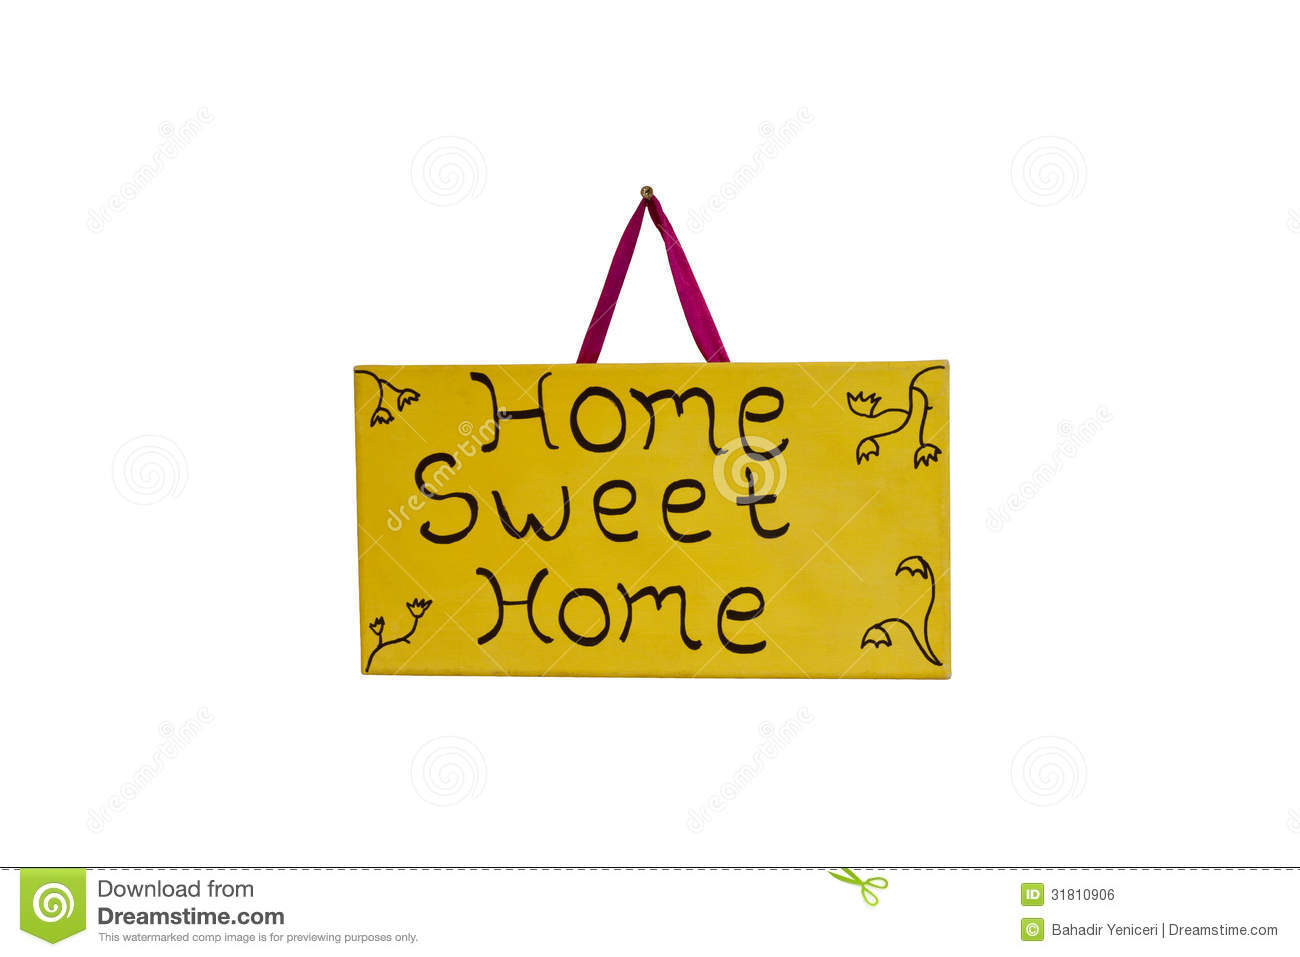 Home Sweet Home Royalty Free Stock Image  Image: 31810906